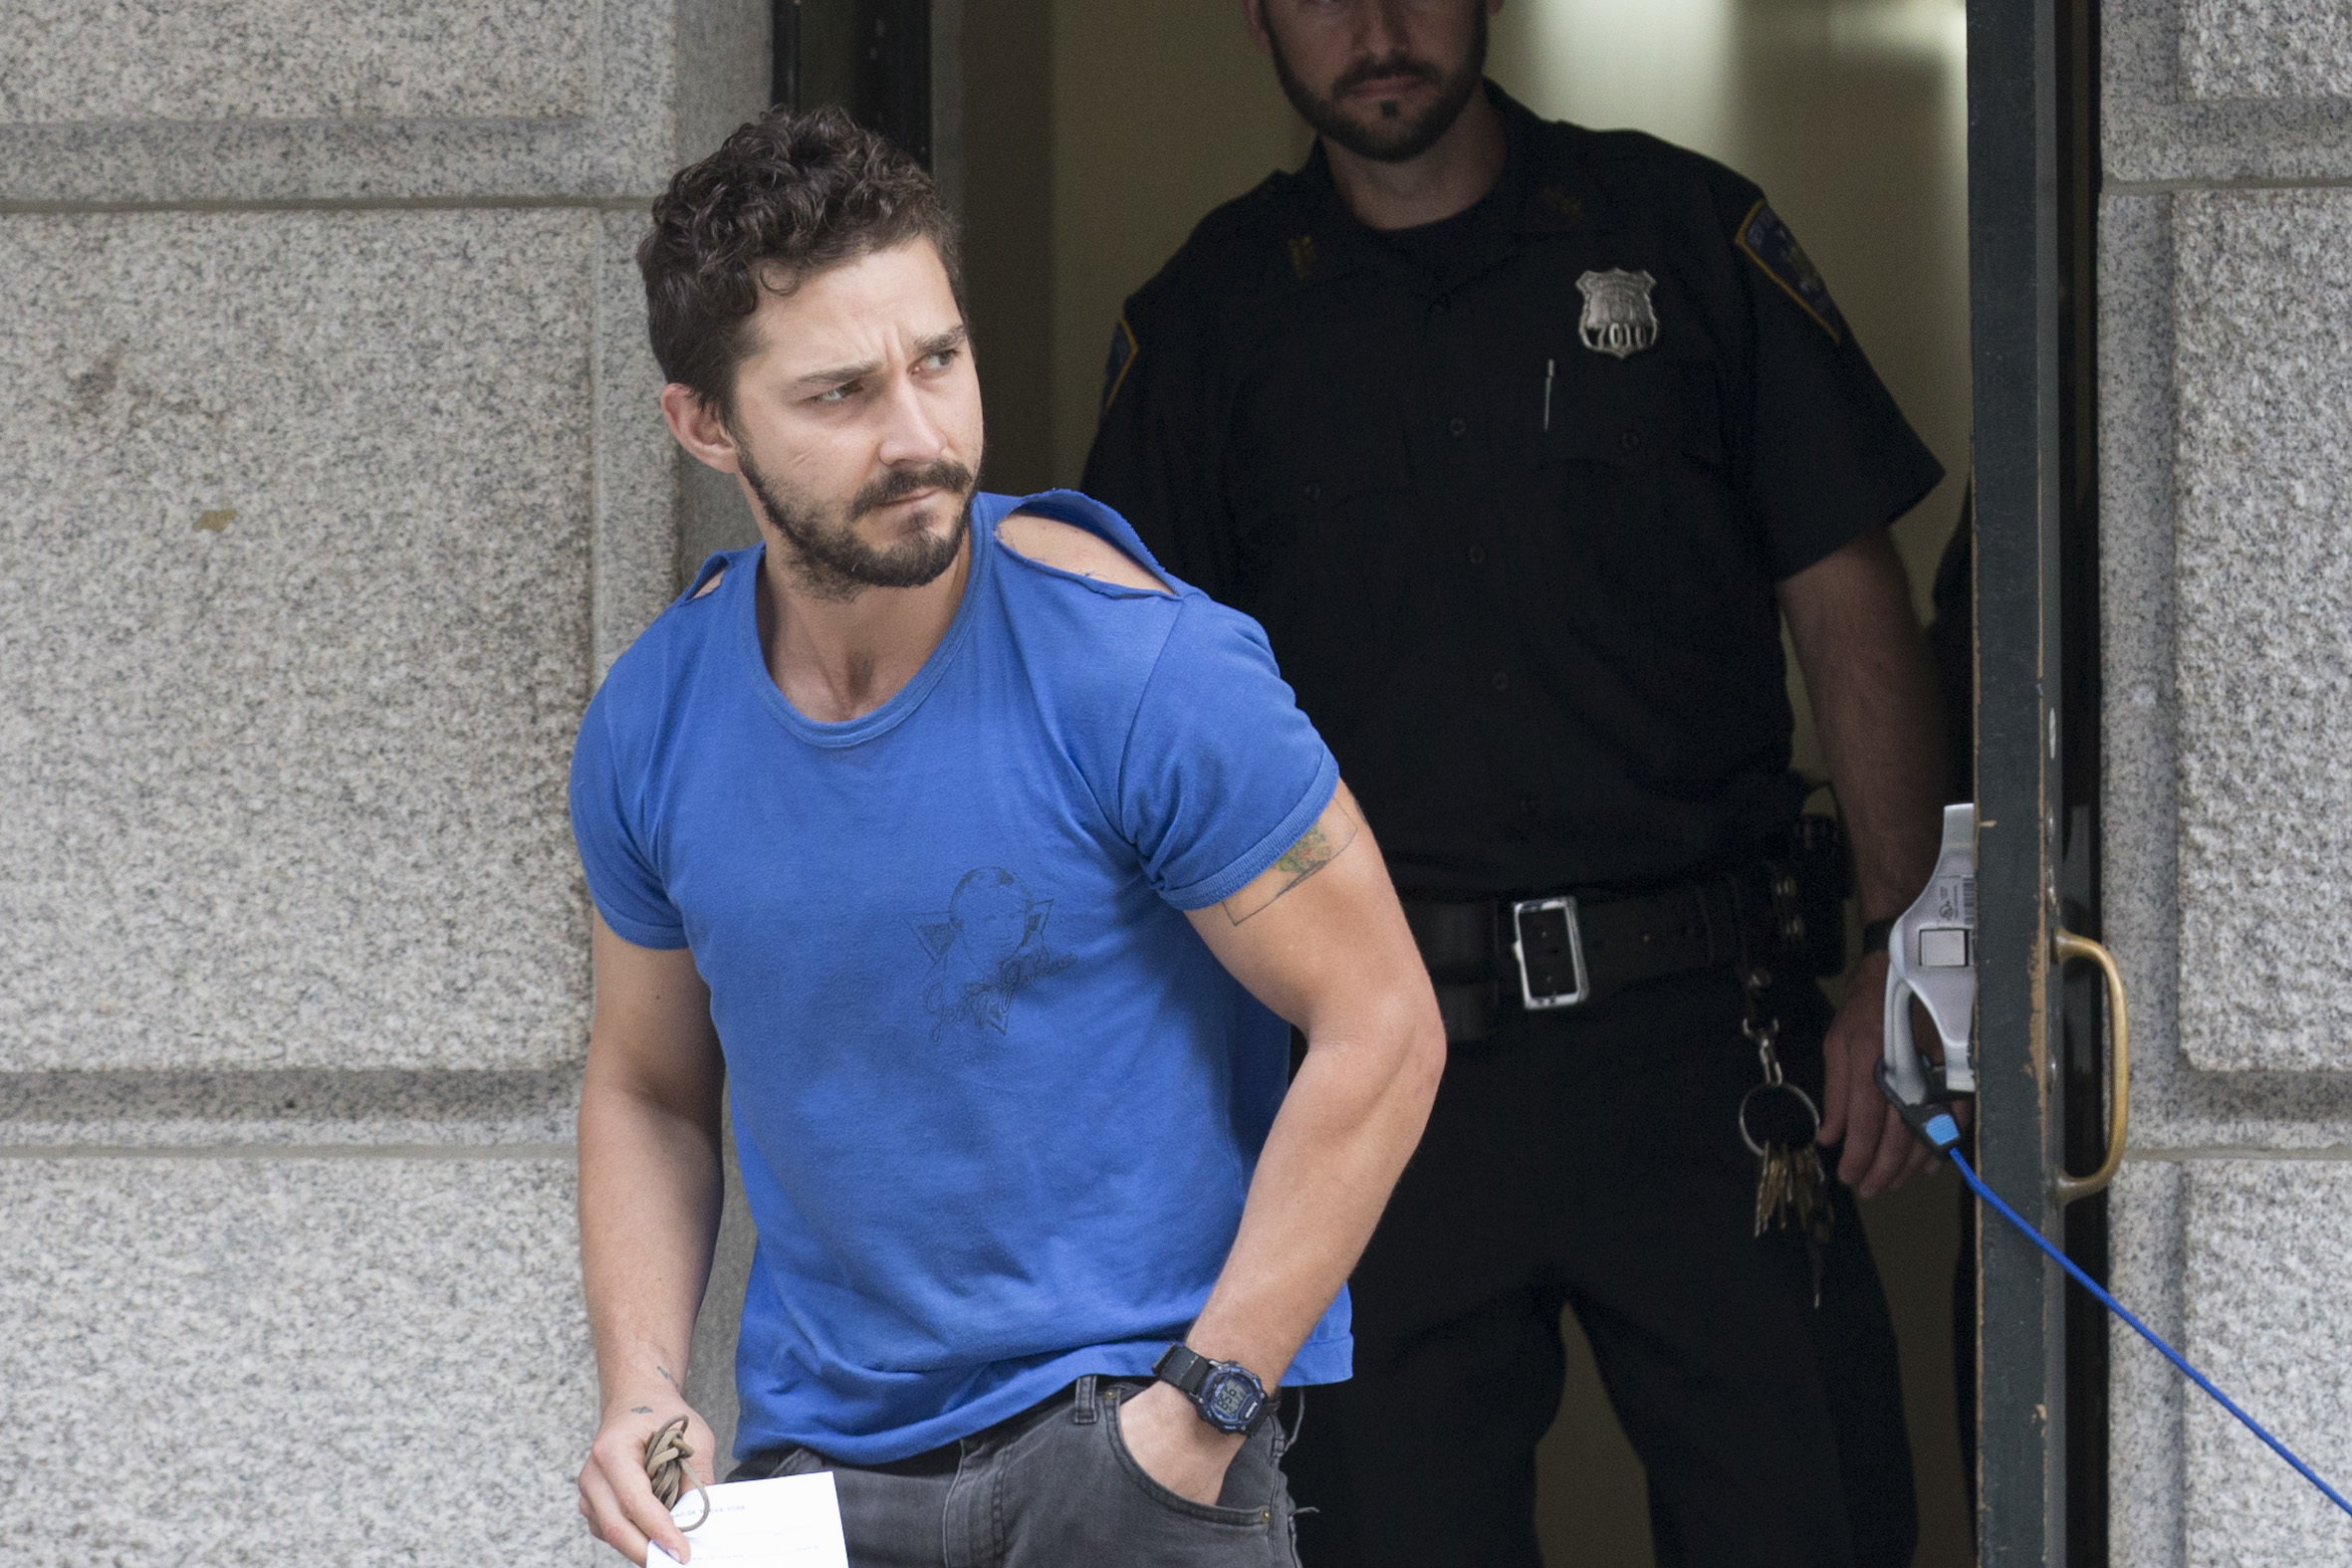 http://www.blogcdn.com/slideshows/images/slides/273/759/7/S2737597/slug/l/people-shia-labeouf-1.jpg